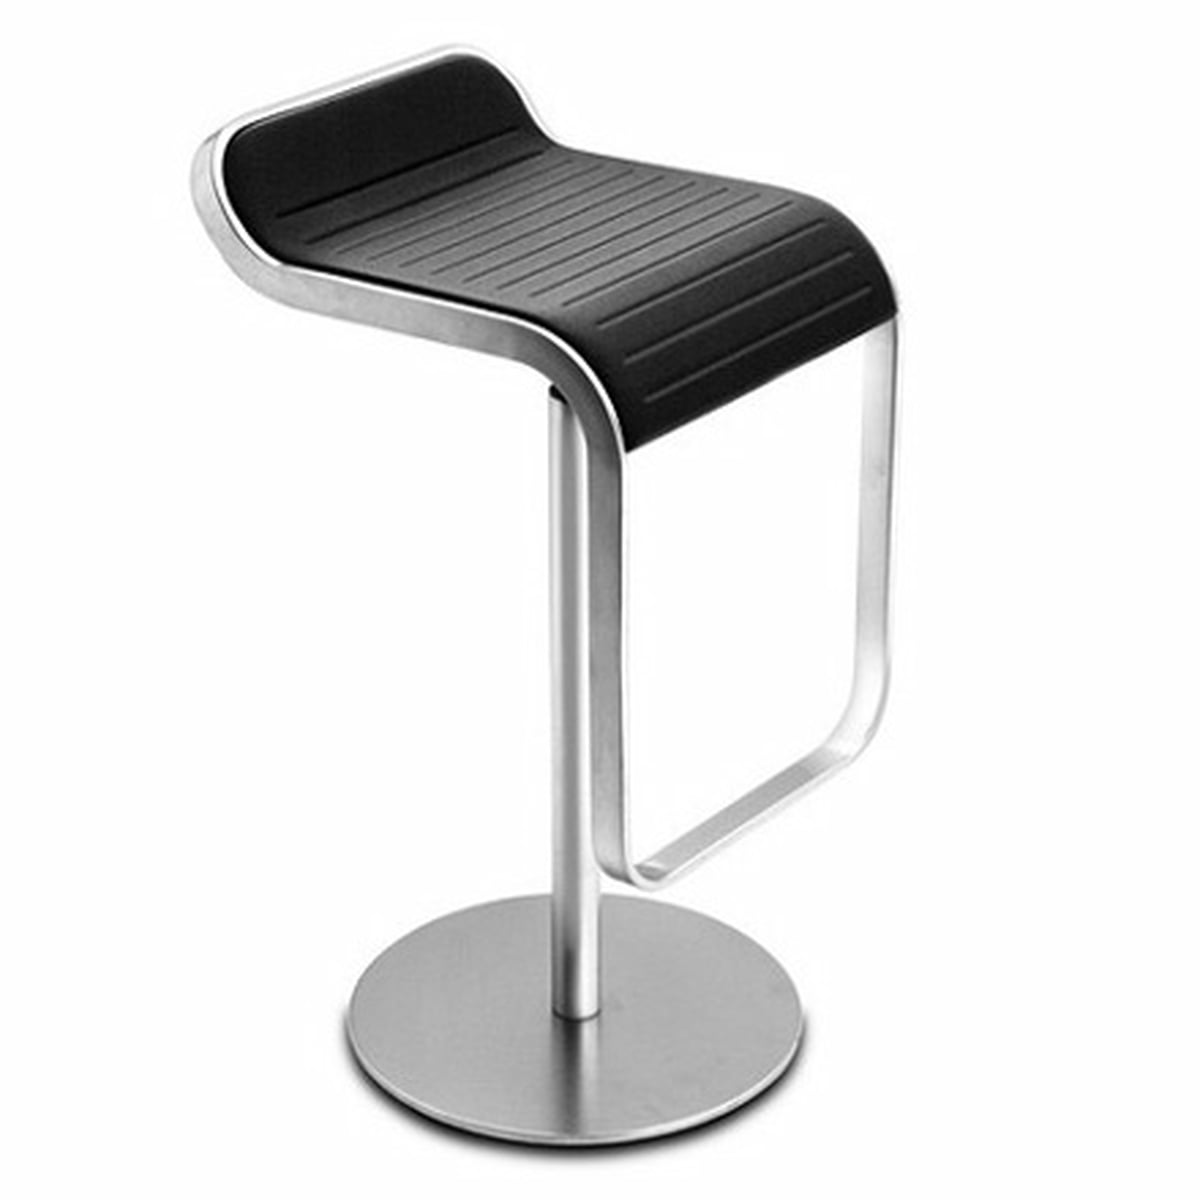 Lem bar stool by lapalma in the shop Lapalma lem